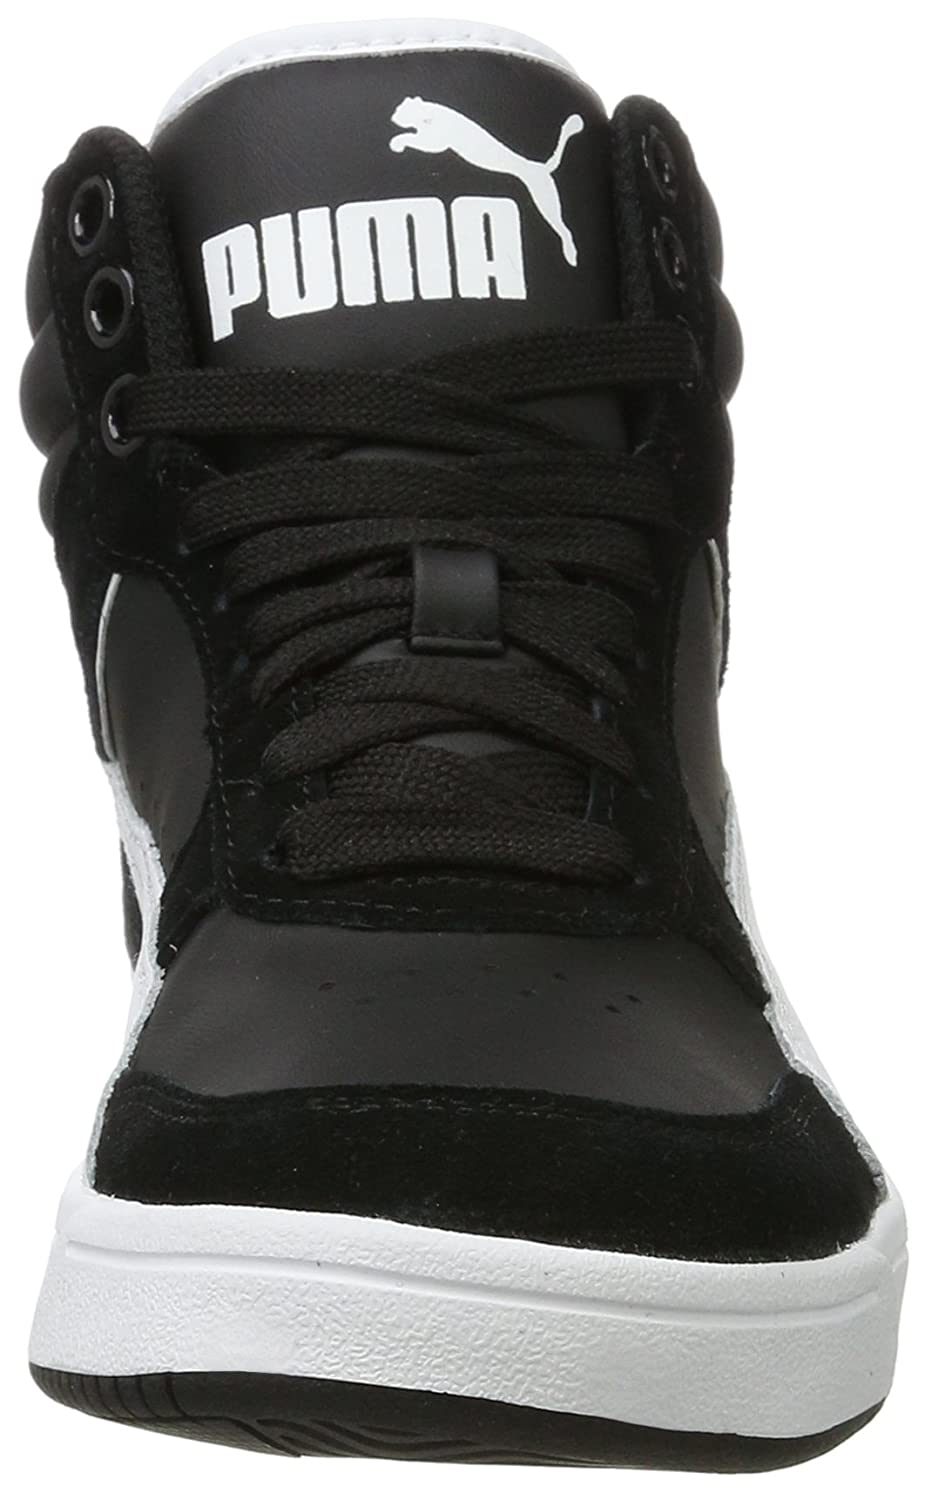 732e8b8432cdc5 Puma Unisex Adults Rebound Street V2 Hi-Top Trainers  Amazon.co.uk  Shoes    Bags